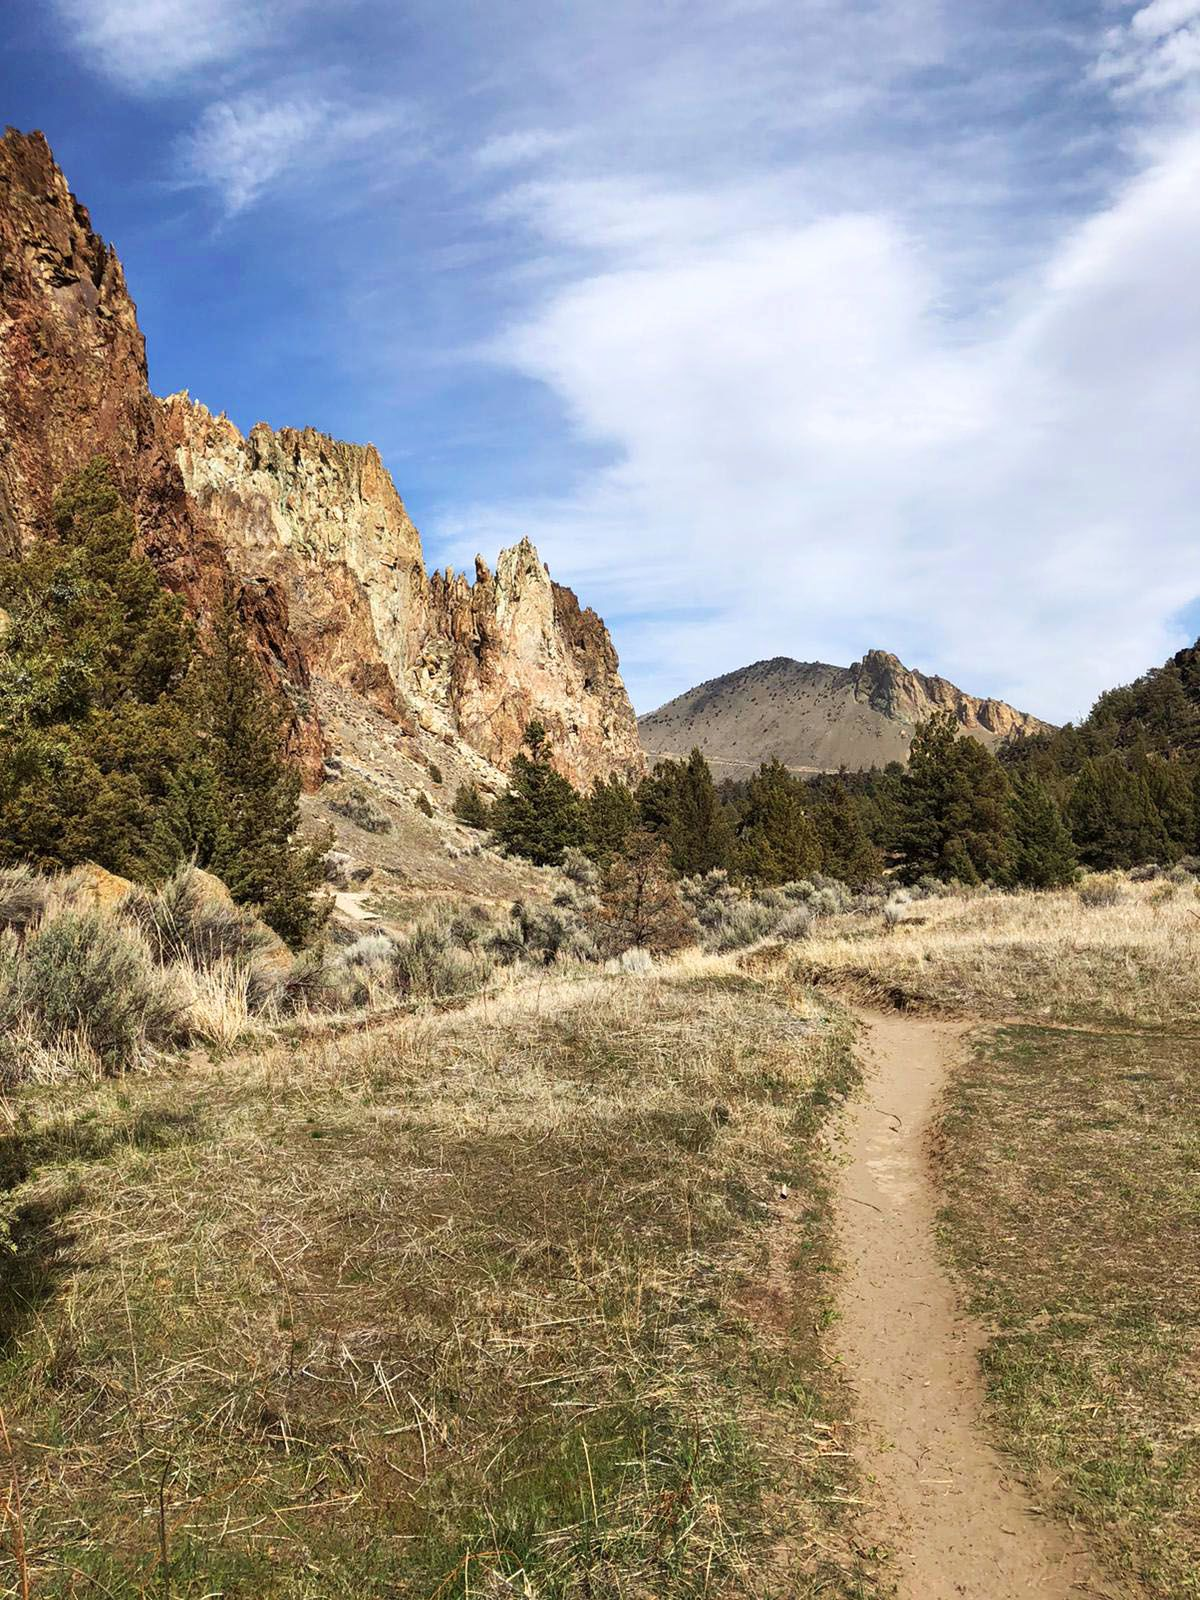 Bend, Mont Bachelor et Smith Rock dans l'Oregon